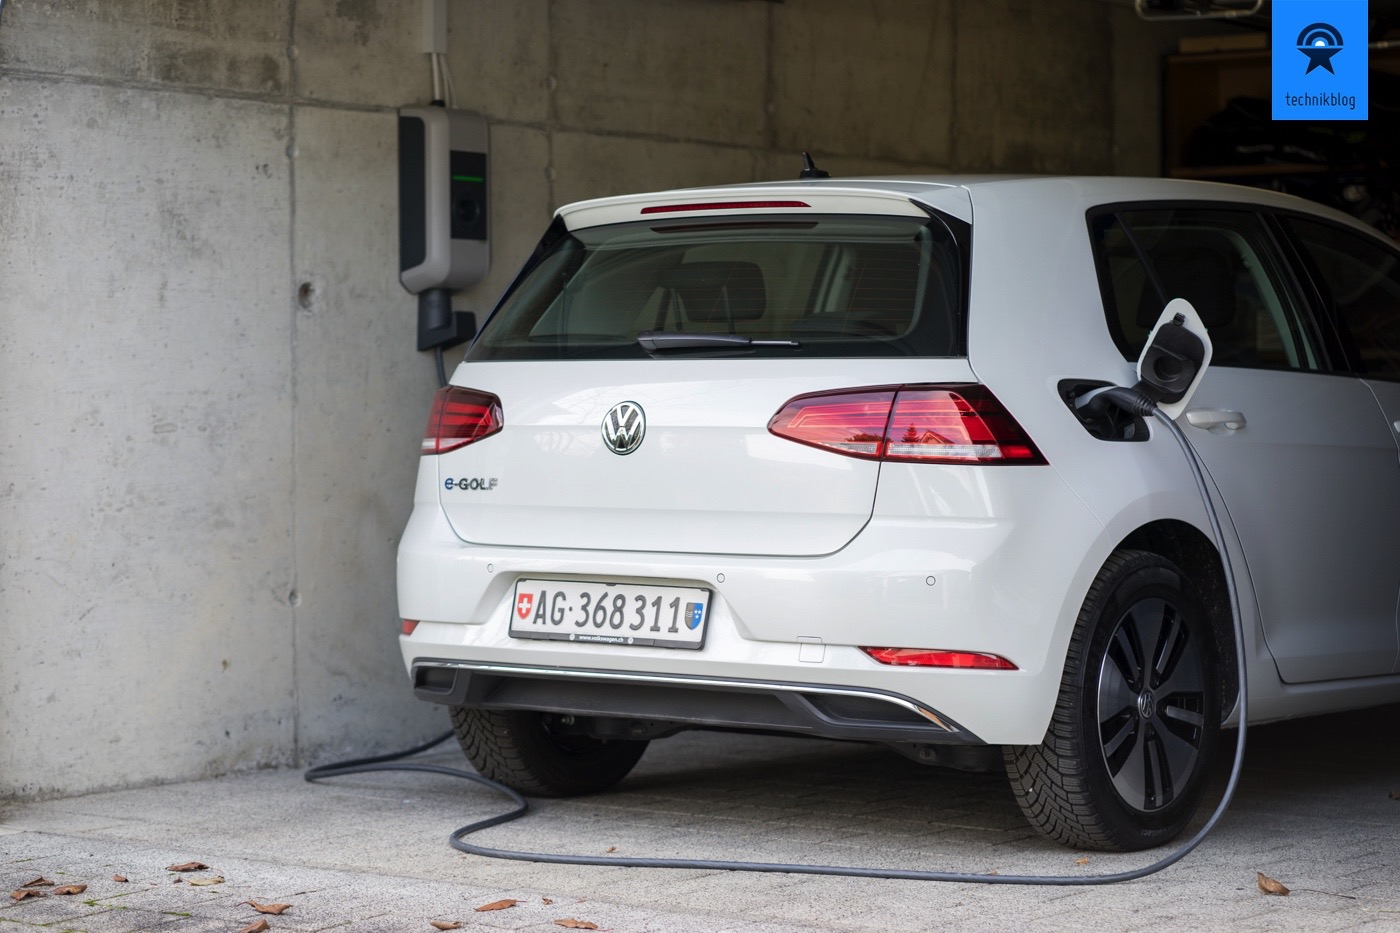 Wallbox Ladestation lädt den VW e-Golf in meiner Garage